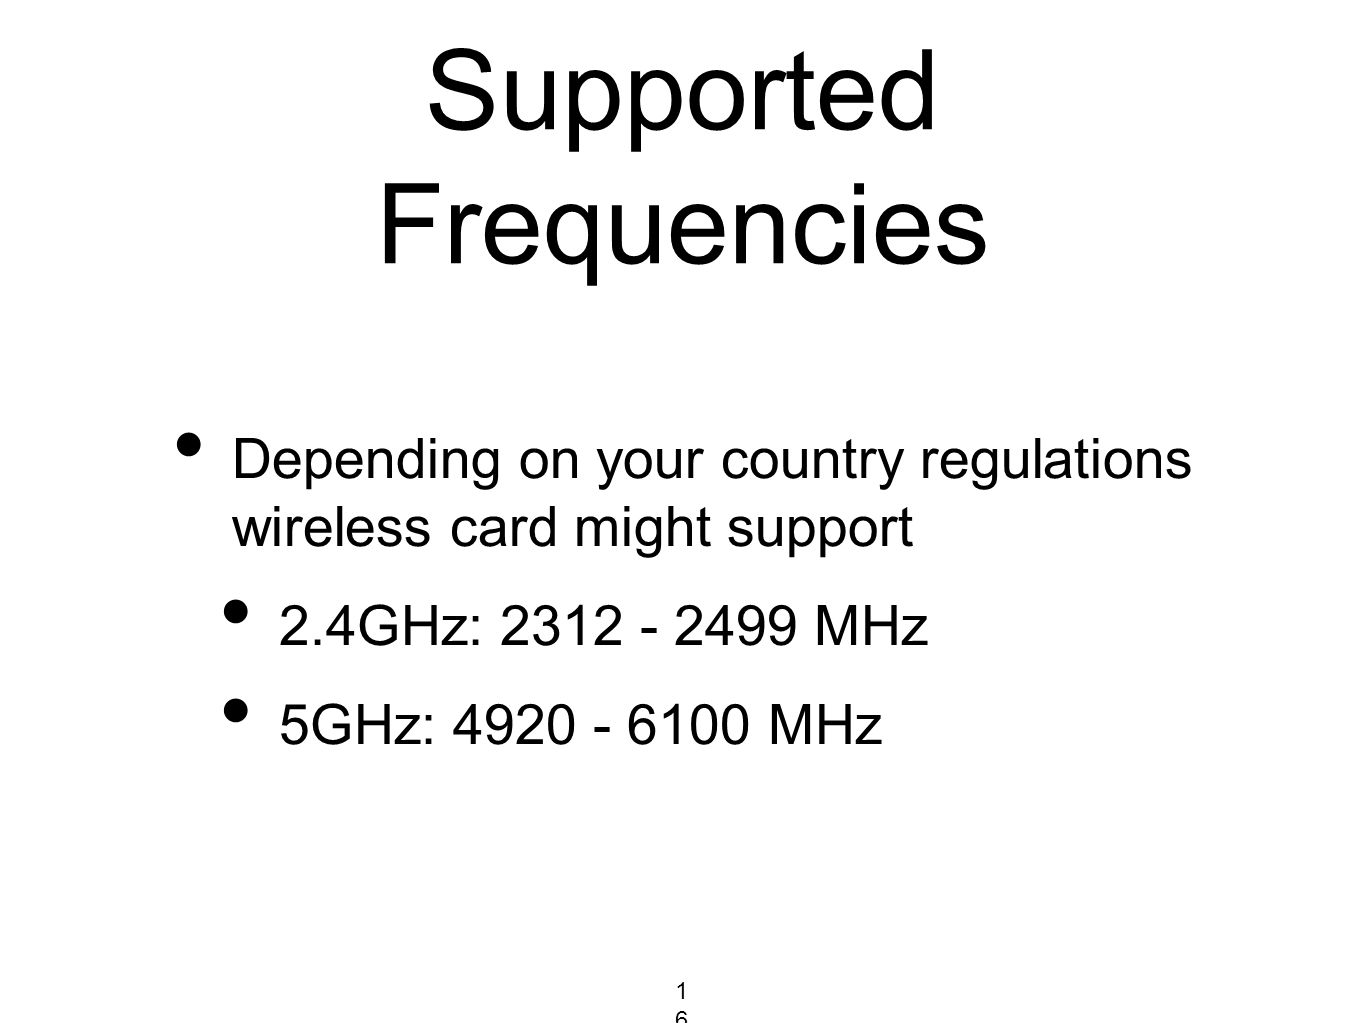 Supported Frequencies Depending on your country regulations wireless card might support 2.4GHz: 2312 - 2499 MHz 5GHz: 4920 - 6100 MHz 168168168